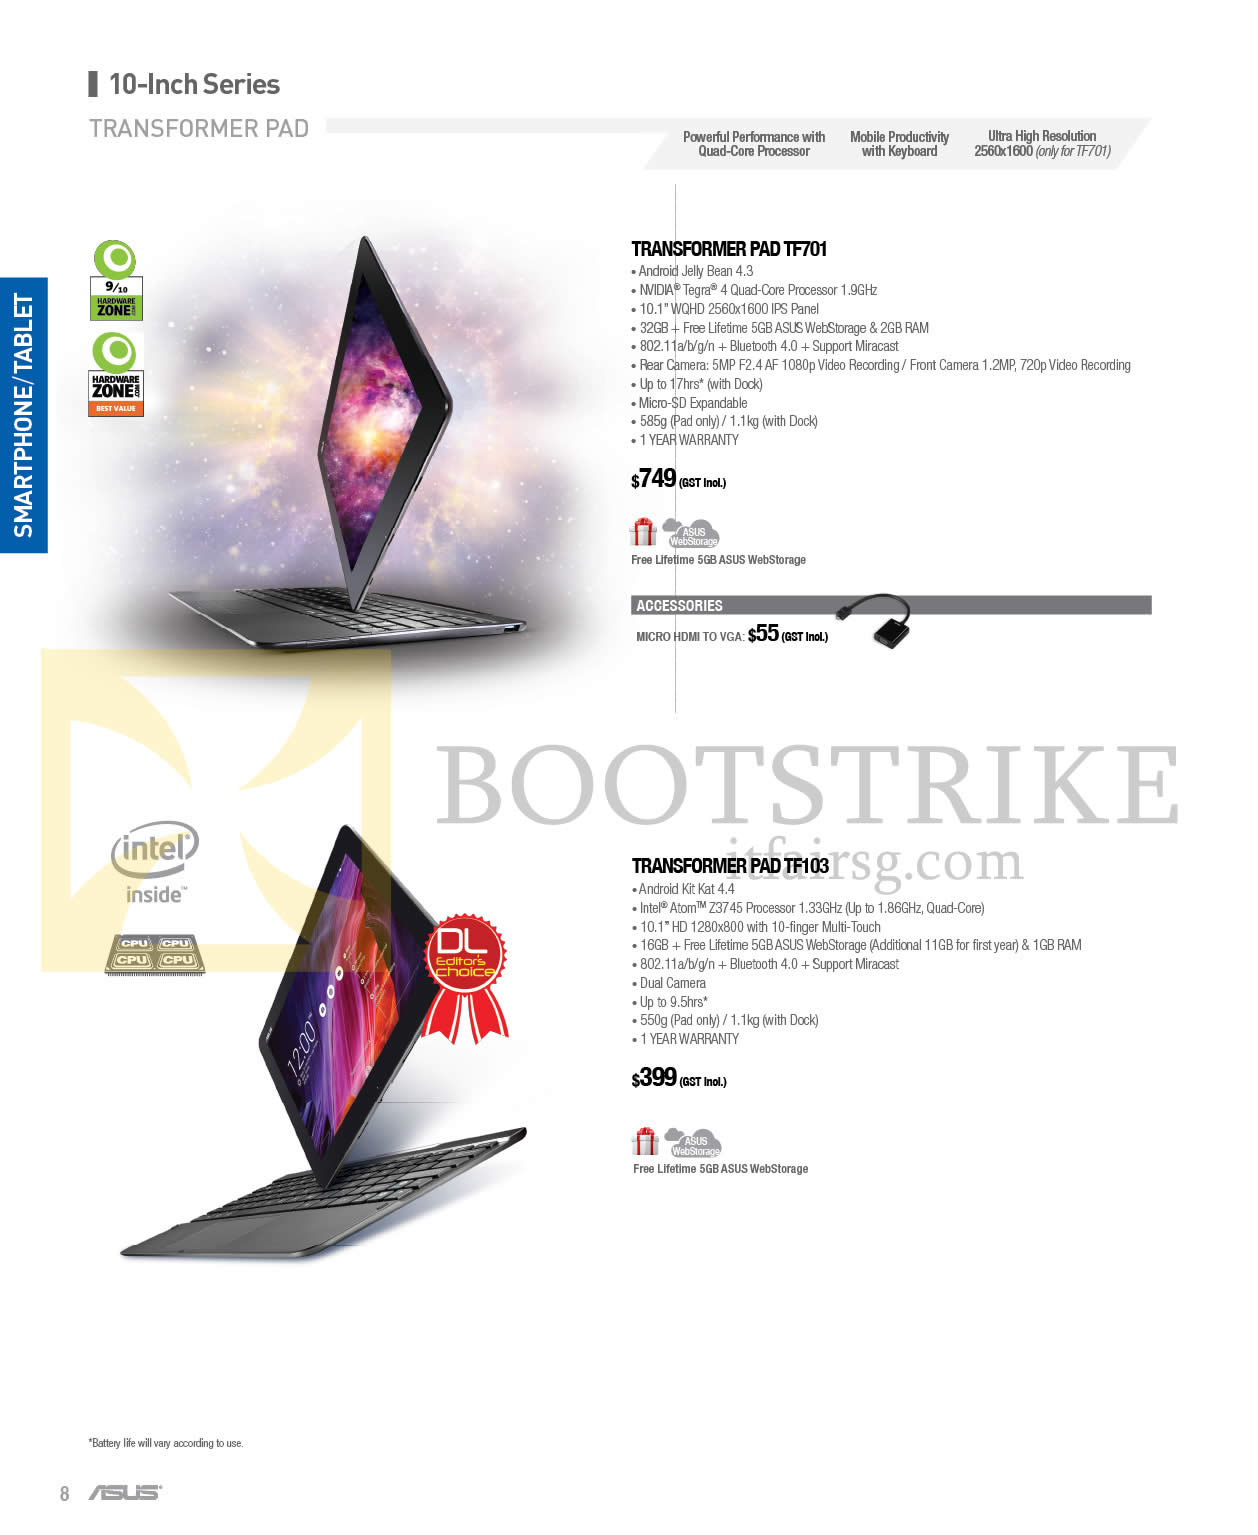 COMEX 2014 price list image brochure of ASUS Transformer Pad TF701, Transformer Pad TF103